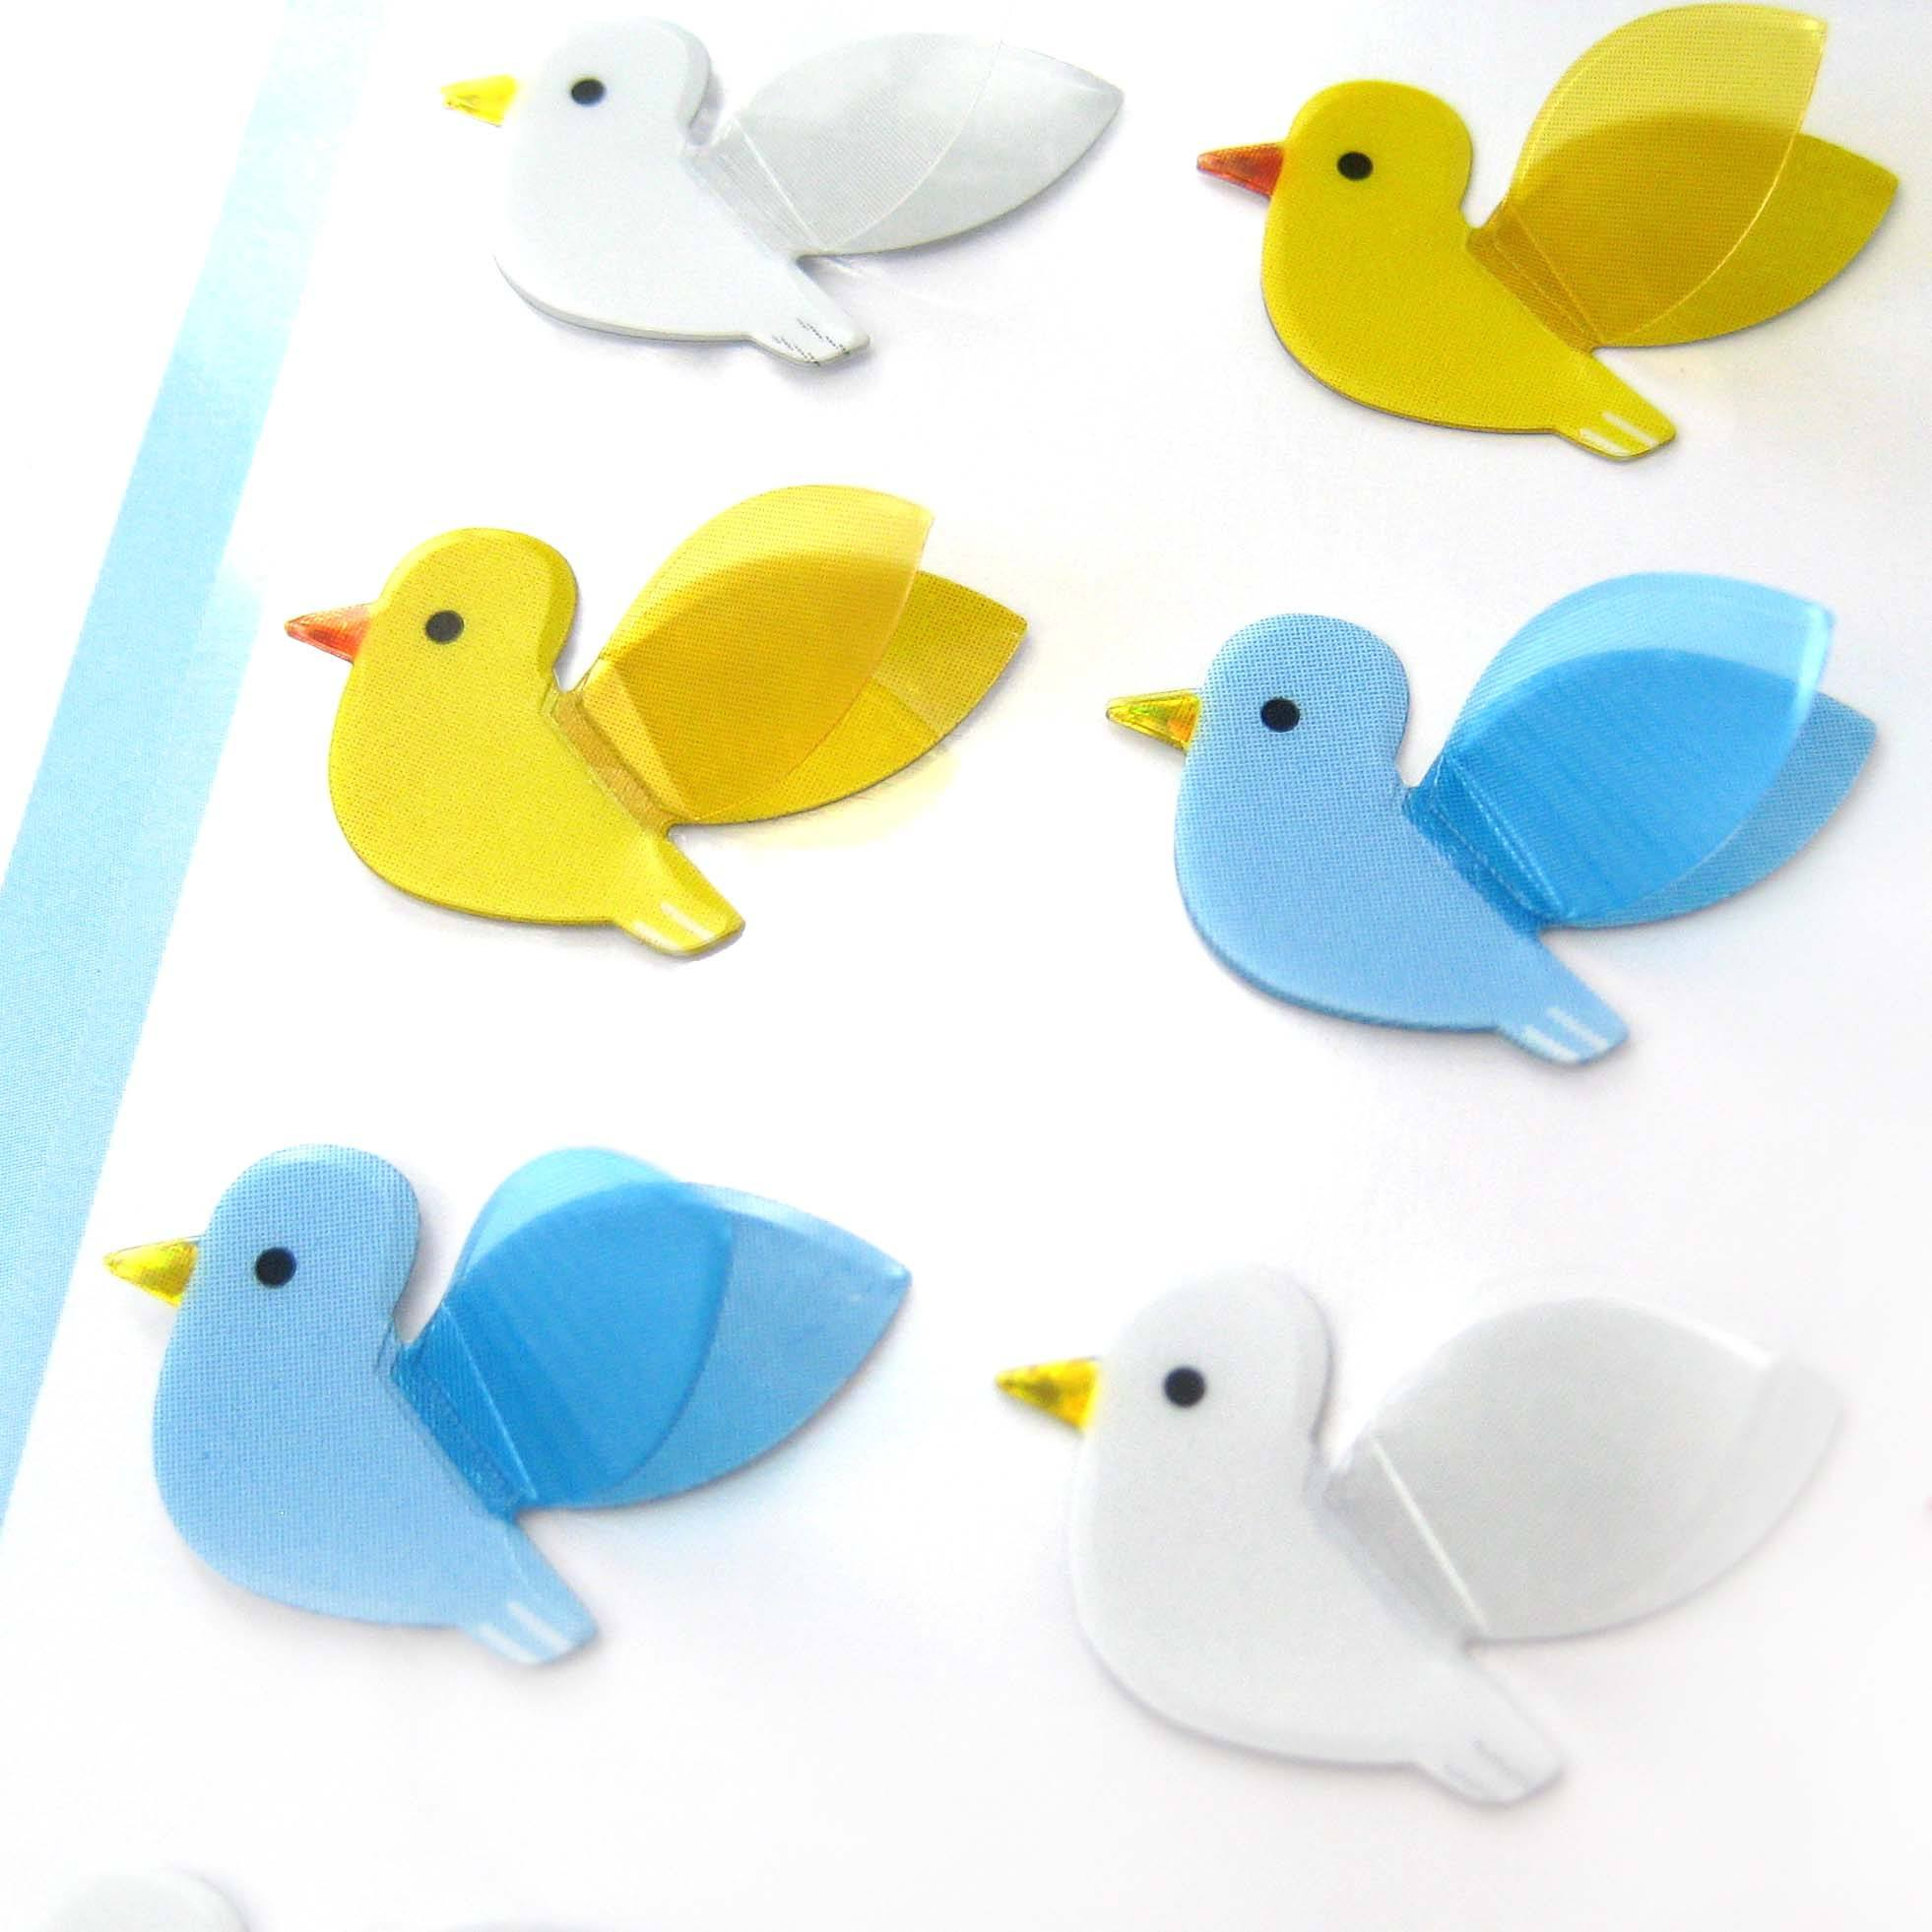 seagull-birds-shaped-3d-pop-up-stickers-for-scrapbooking-and-decorating